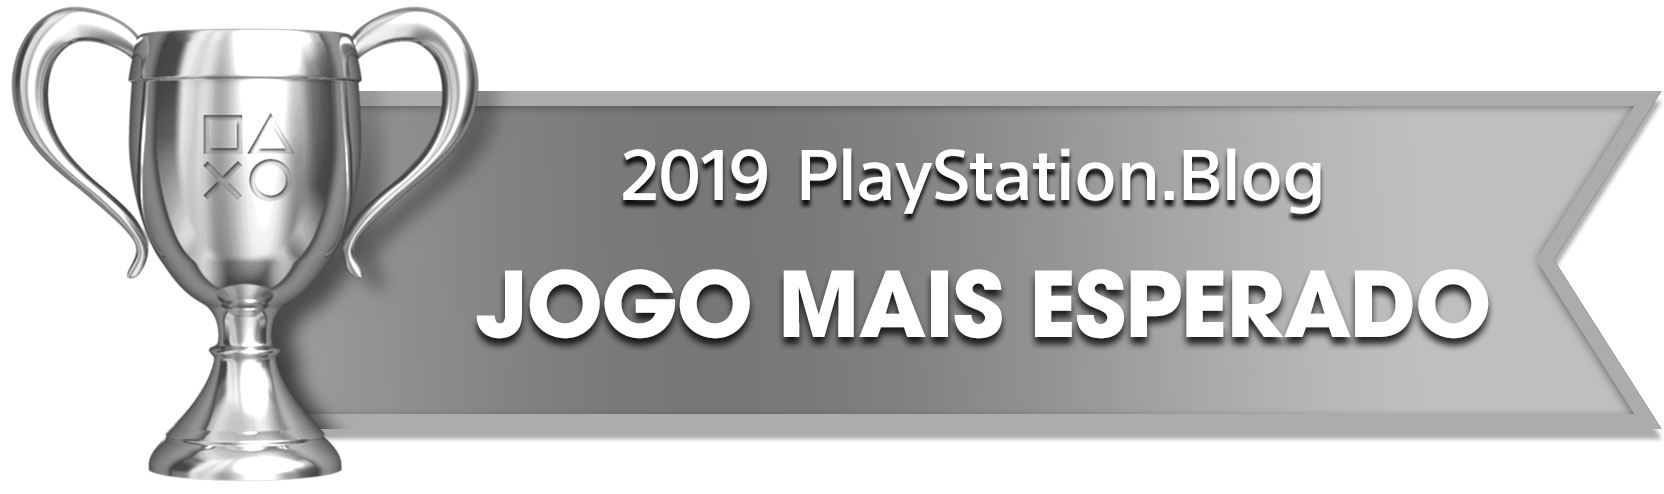 PS Blog Game of the Year 2019 - Most Anticipated - 3 - Silver